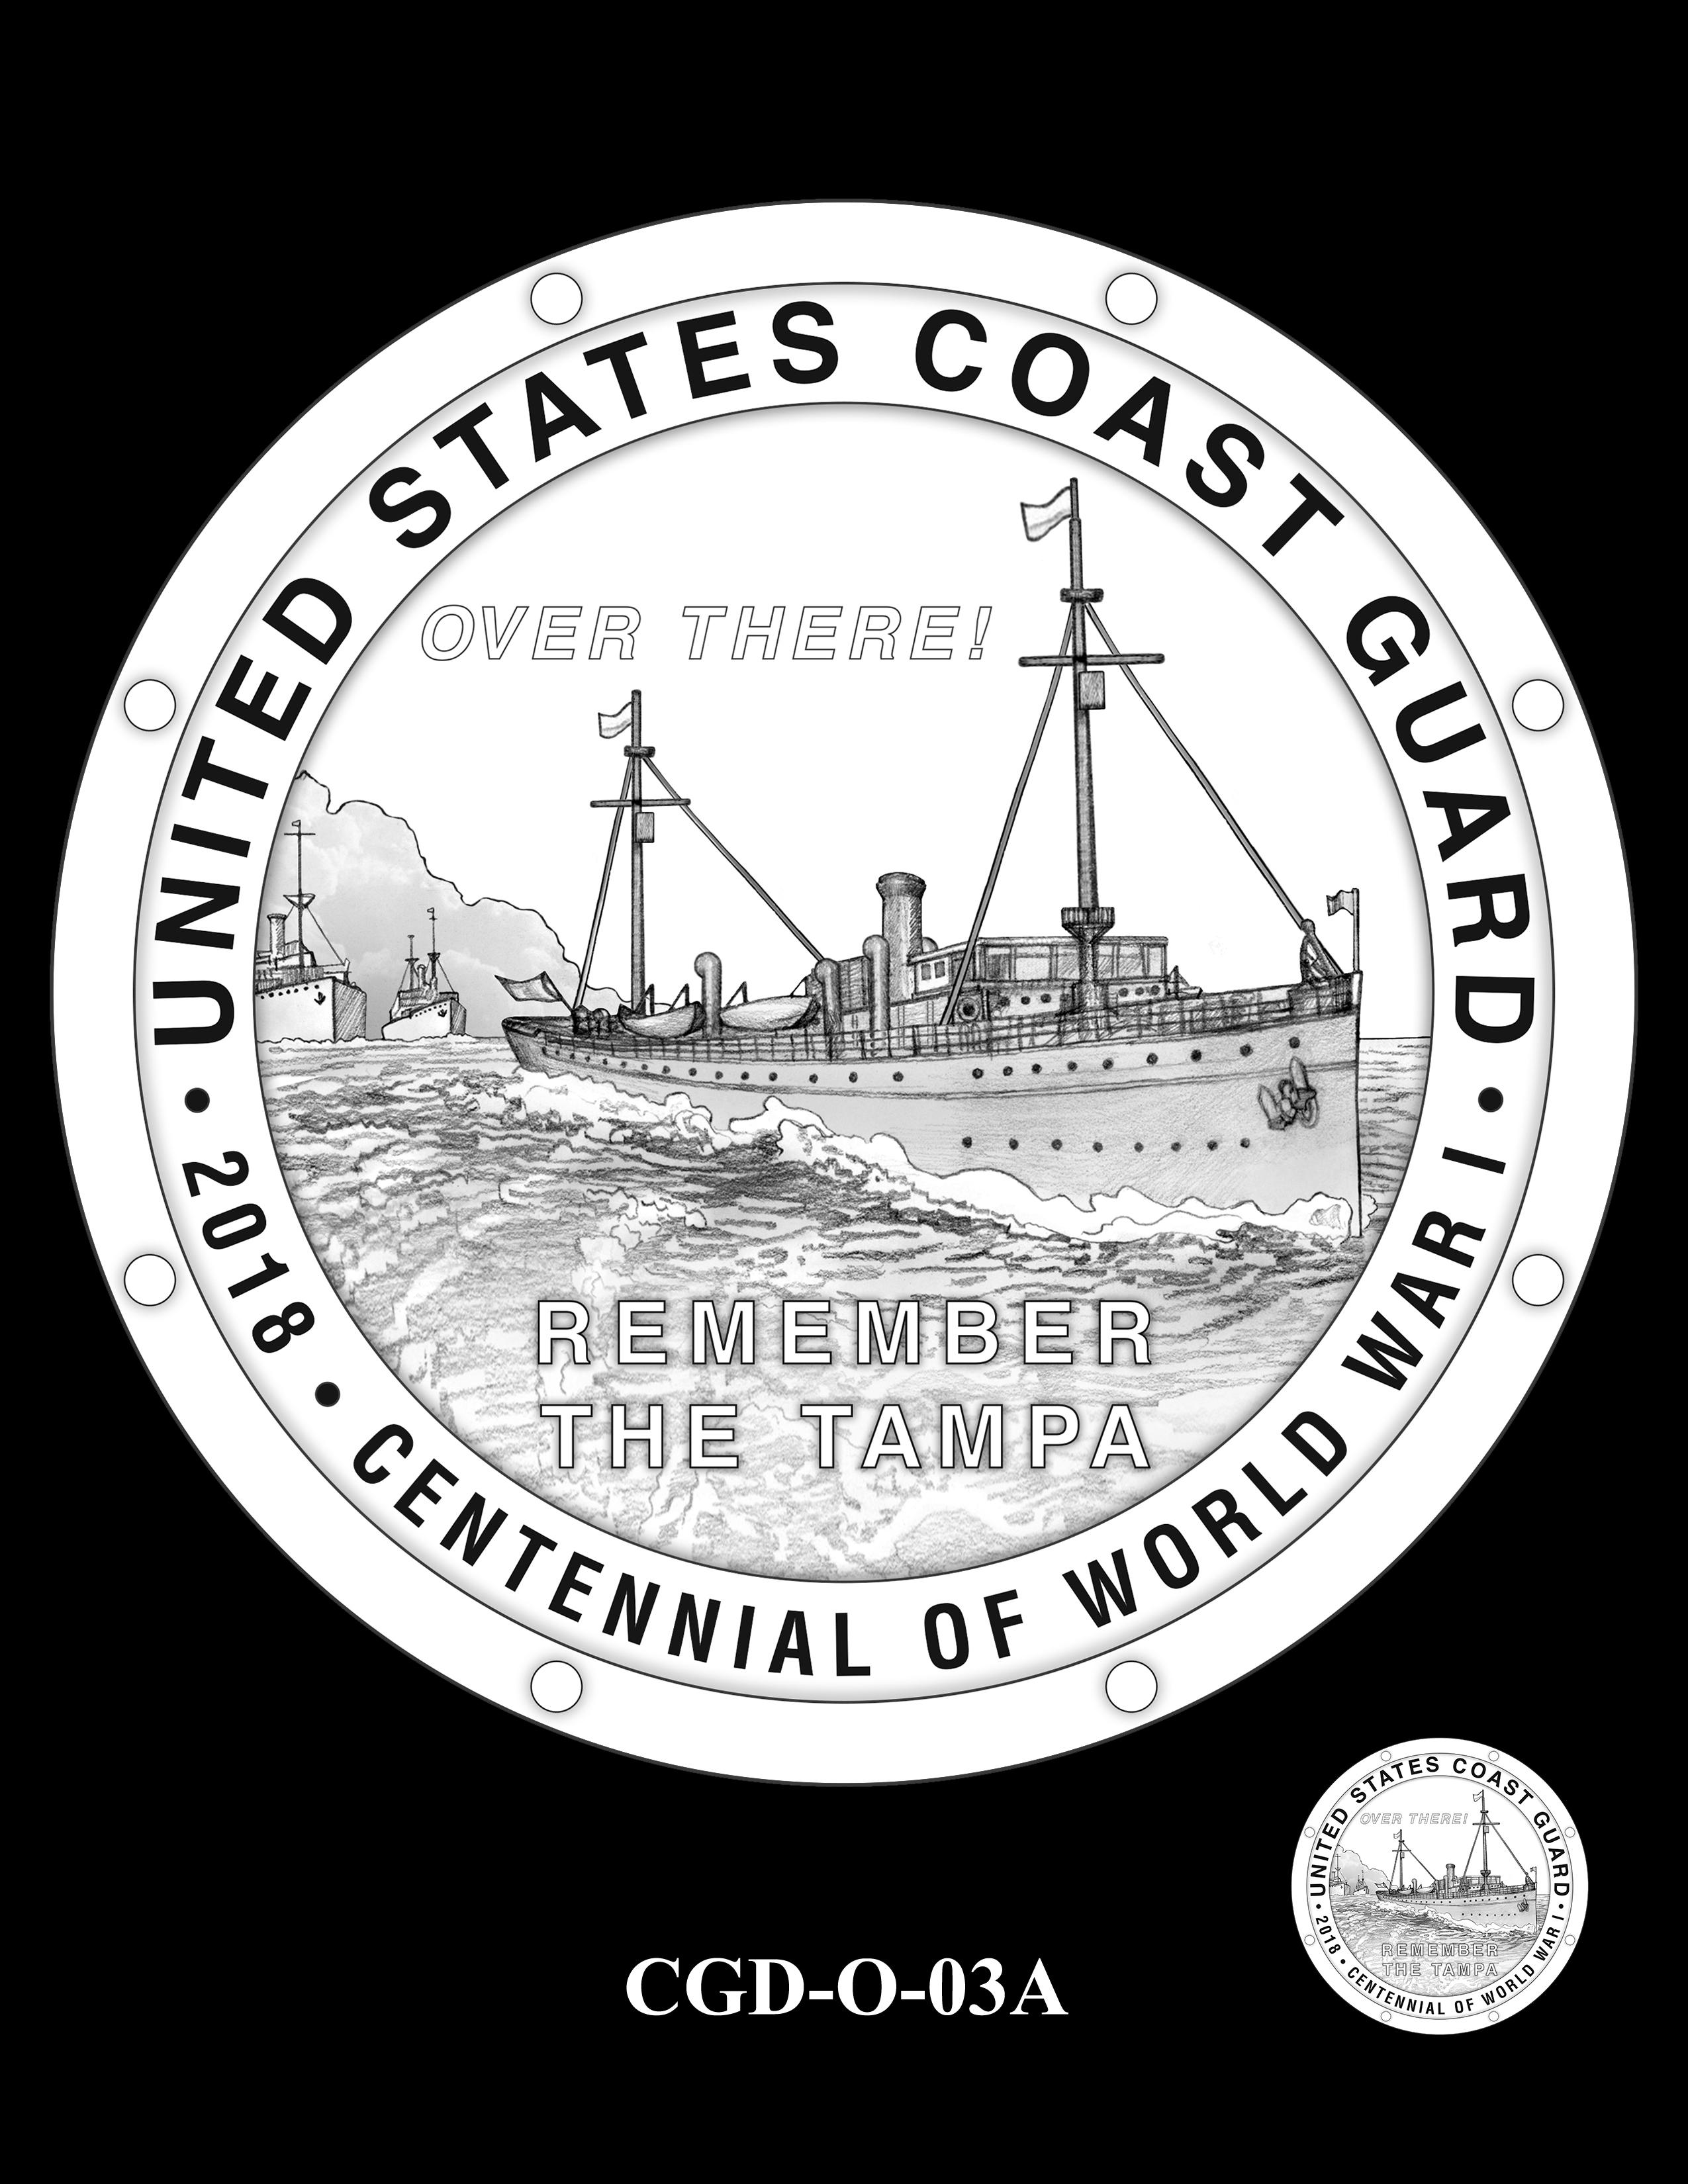 P1a-CGD-O-03A -- 2018-World War I Silver Medals - Coast Guard